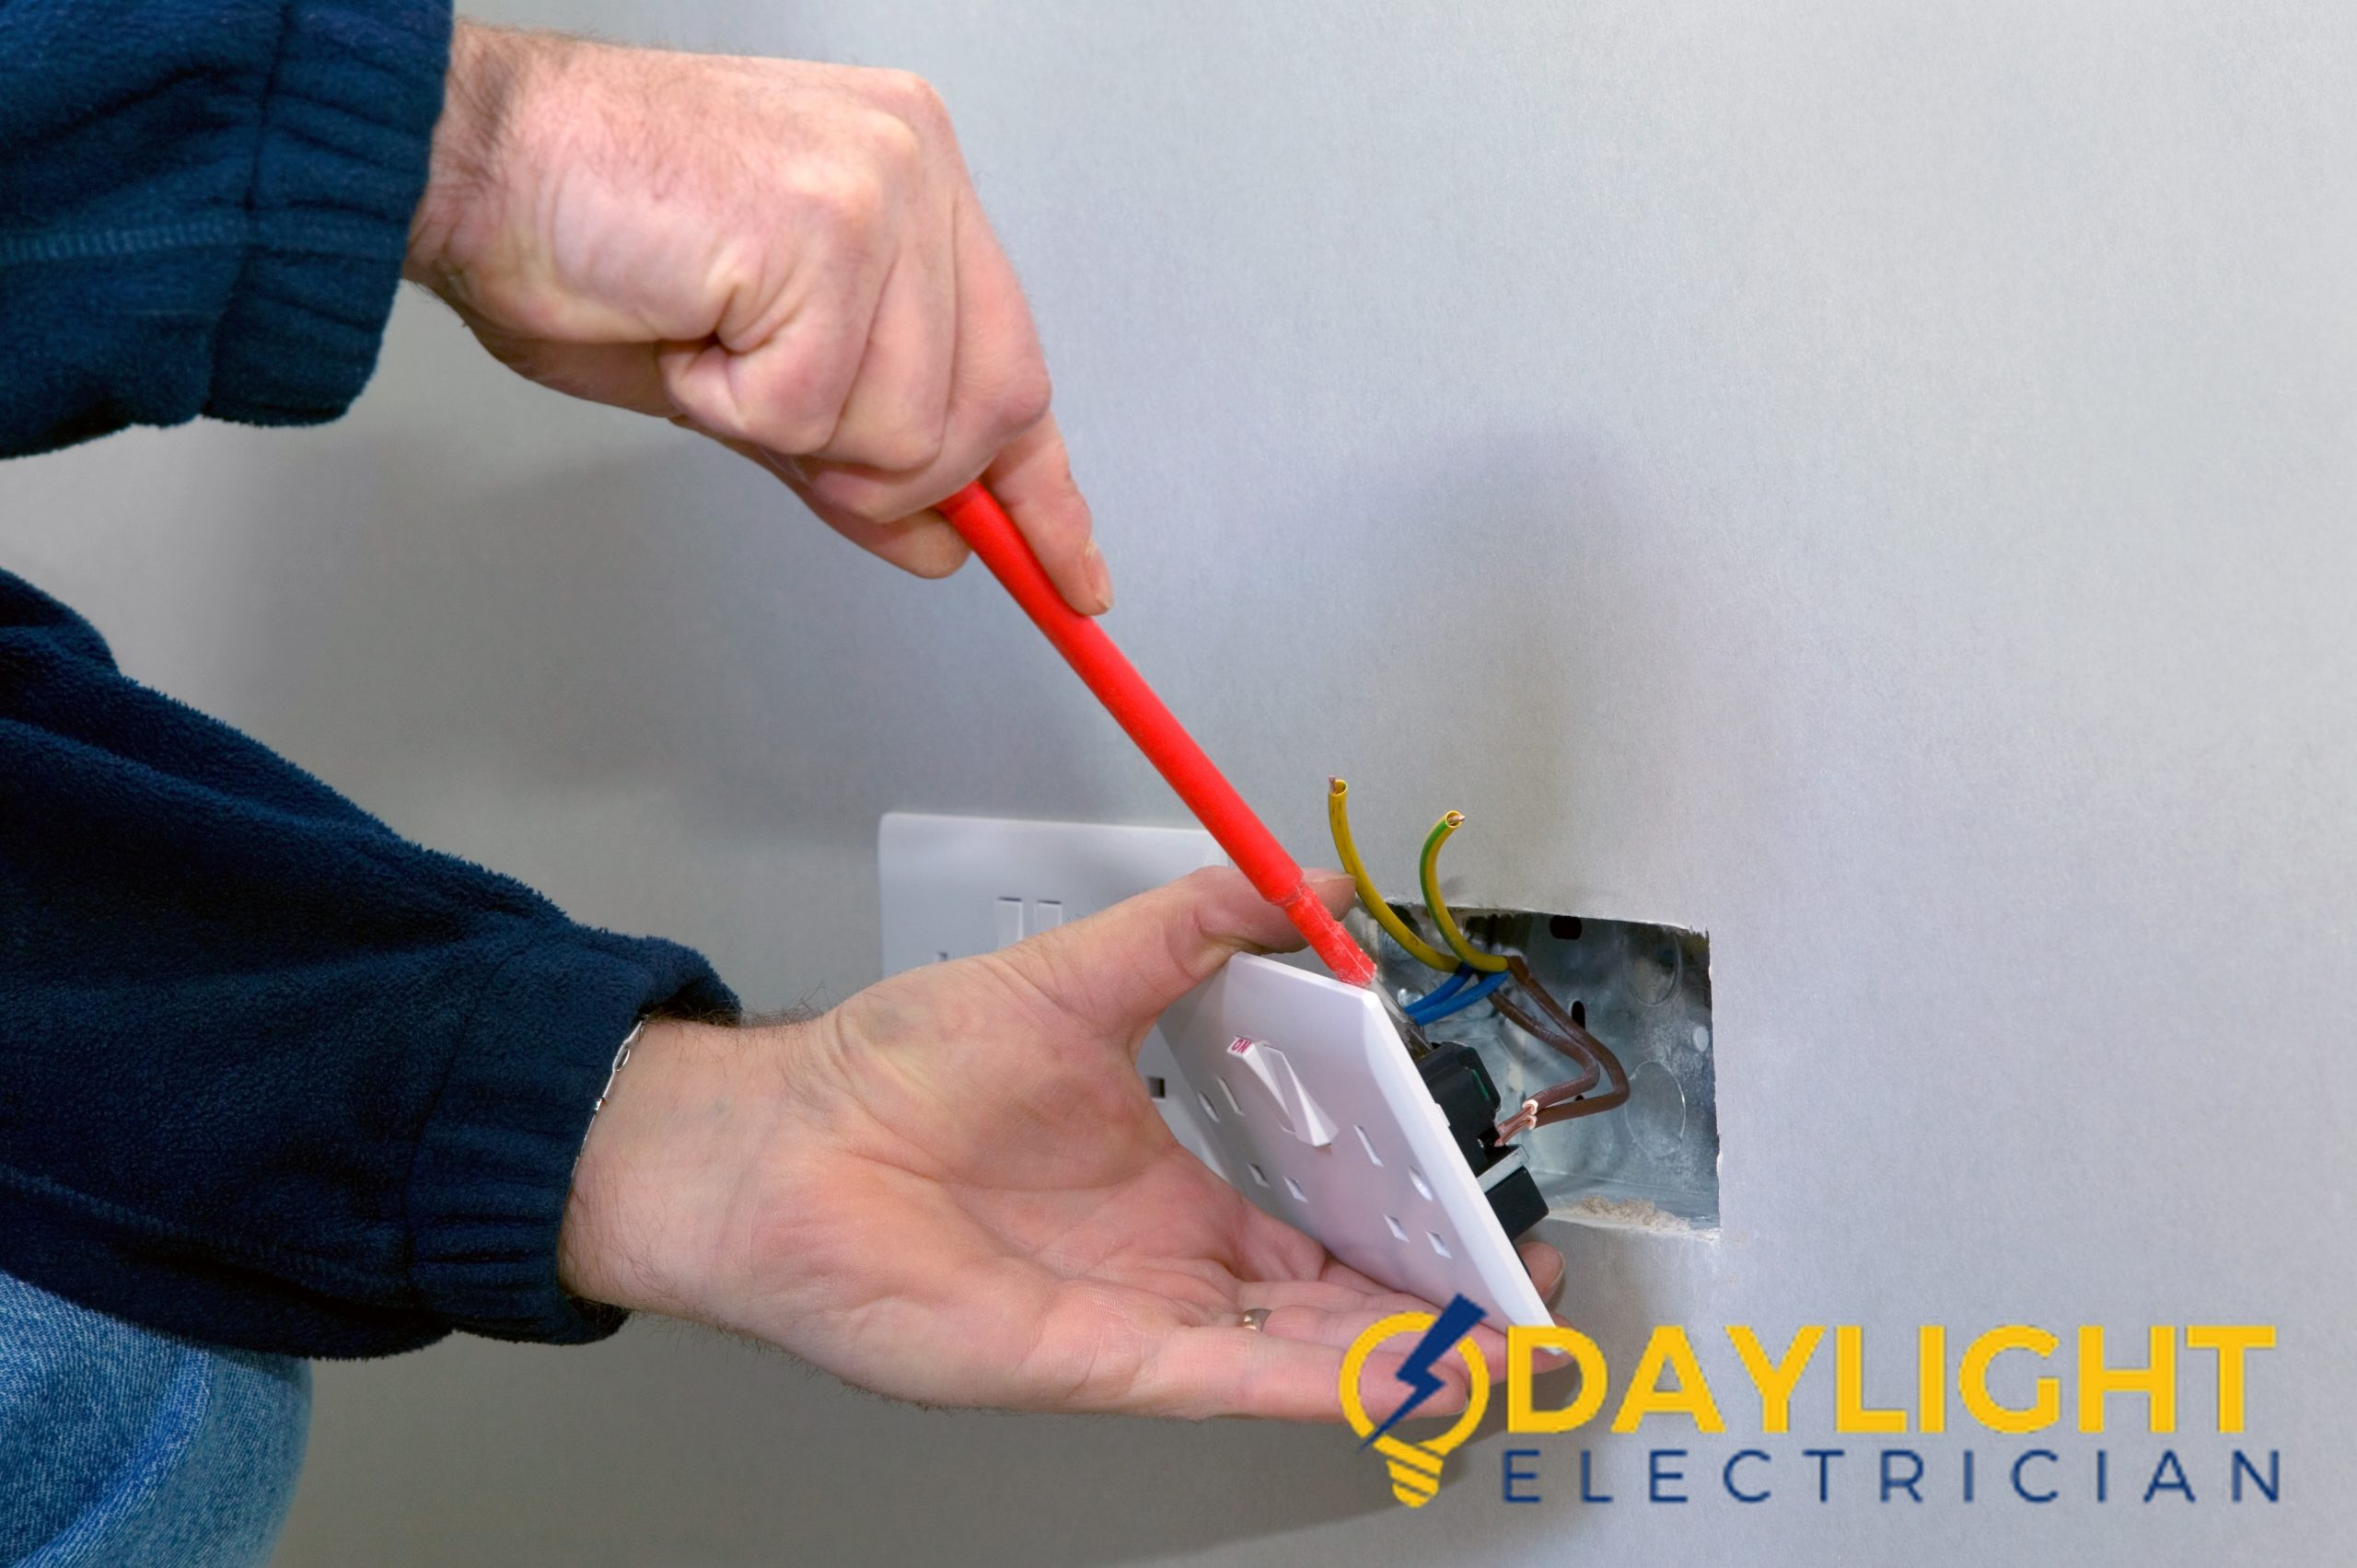 replace-power-socket-with-the-help-of-an-electrician-daylight-electrician-singapore_wm-scaled